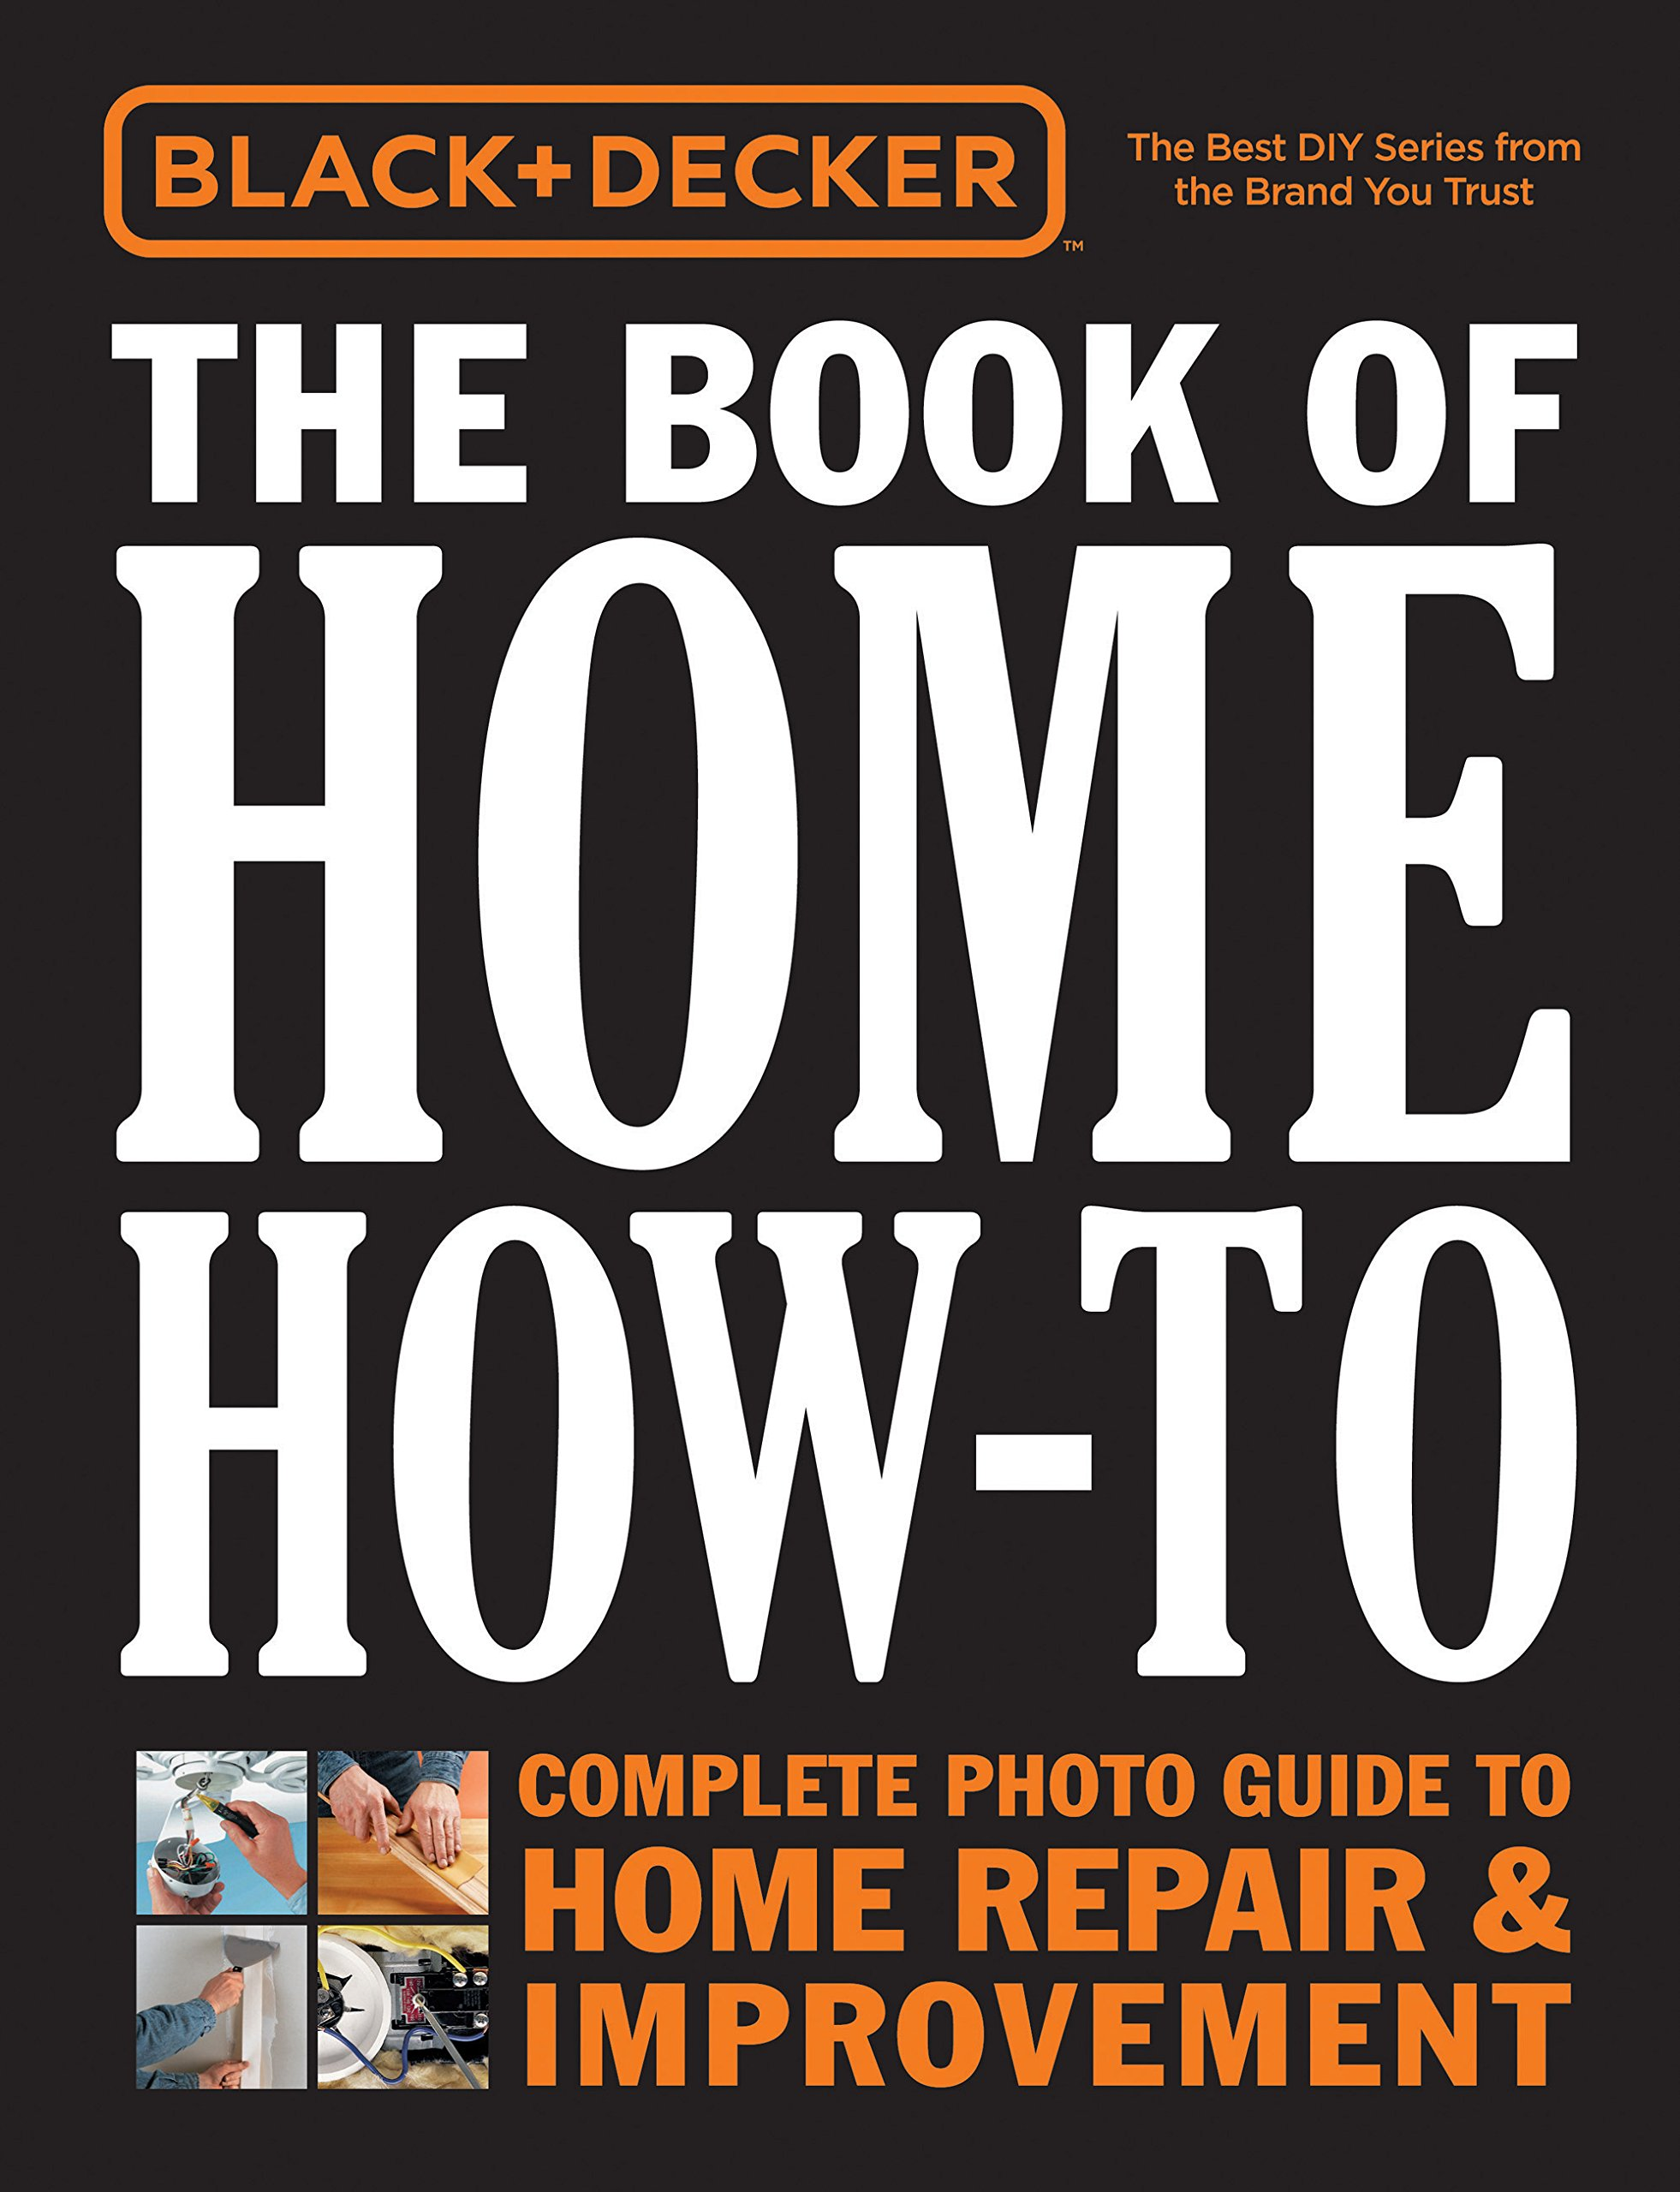 The book of home how-to : complete photo guide to home repair &  improvement / Black+Decker.